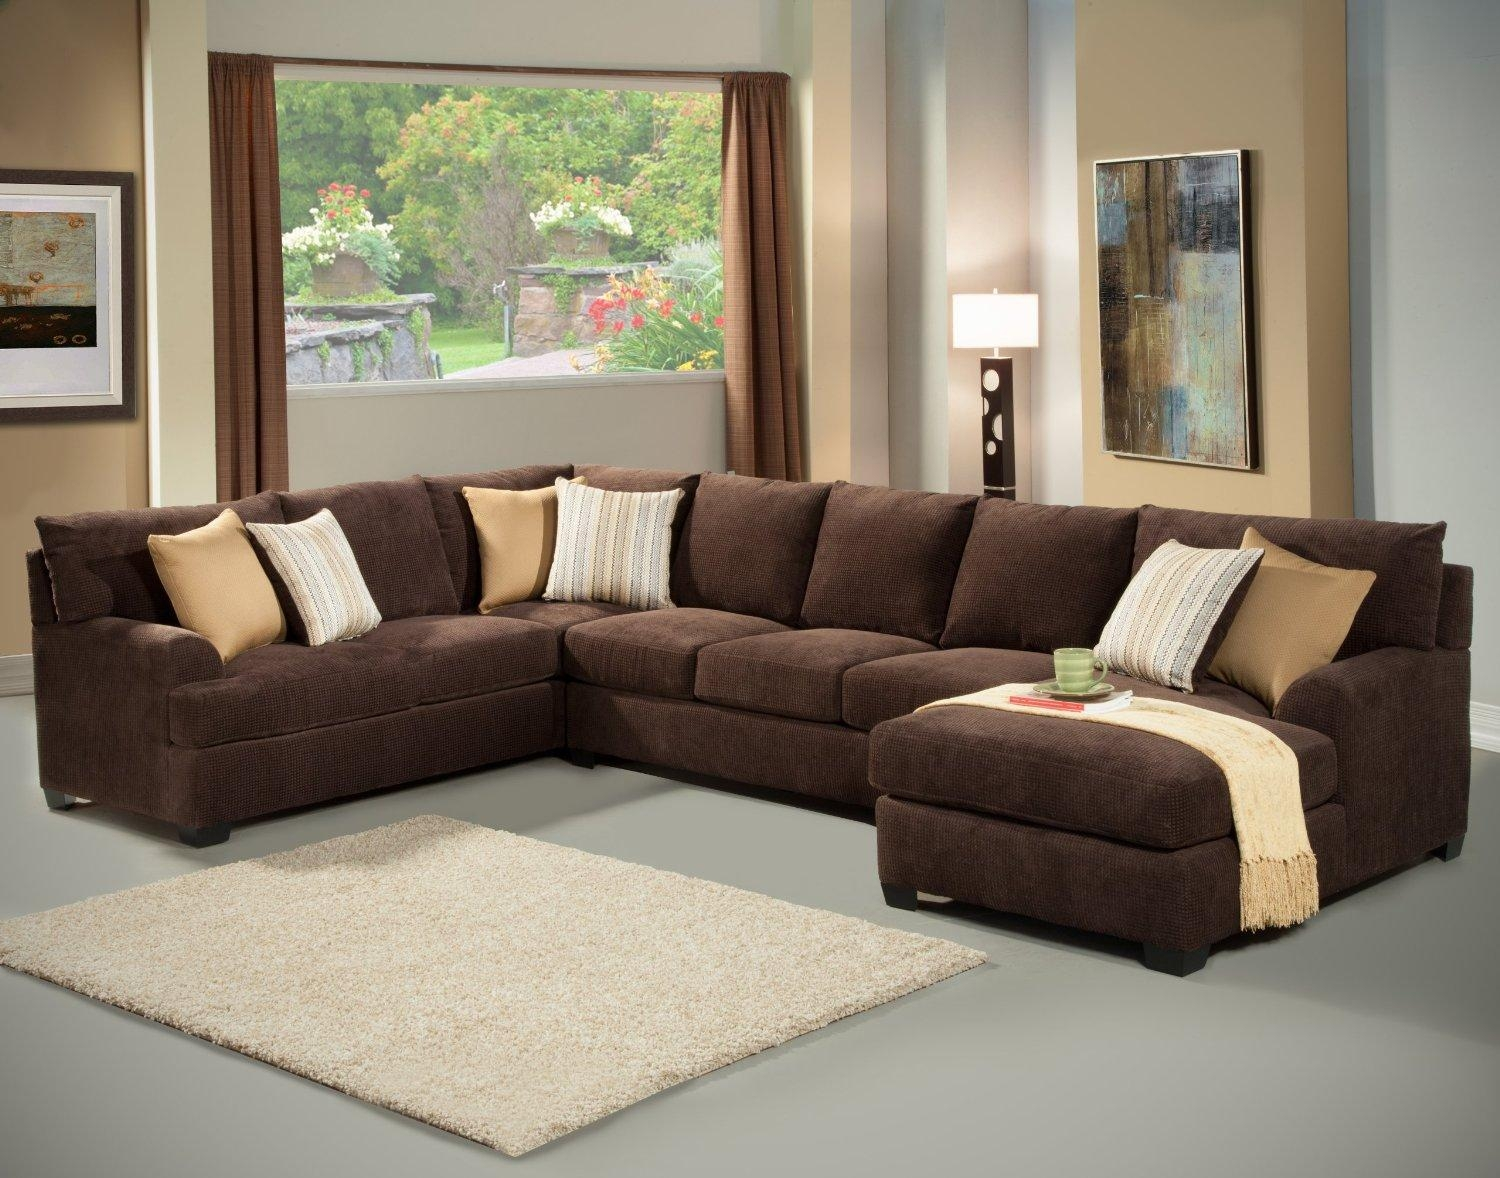 Furniture Home: Trend Microfiber Sectional Sofa With Chaise 43 For Large Microfiber Sectional (Image 4 of 20)